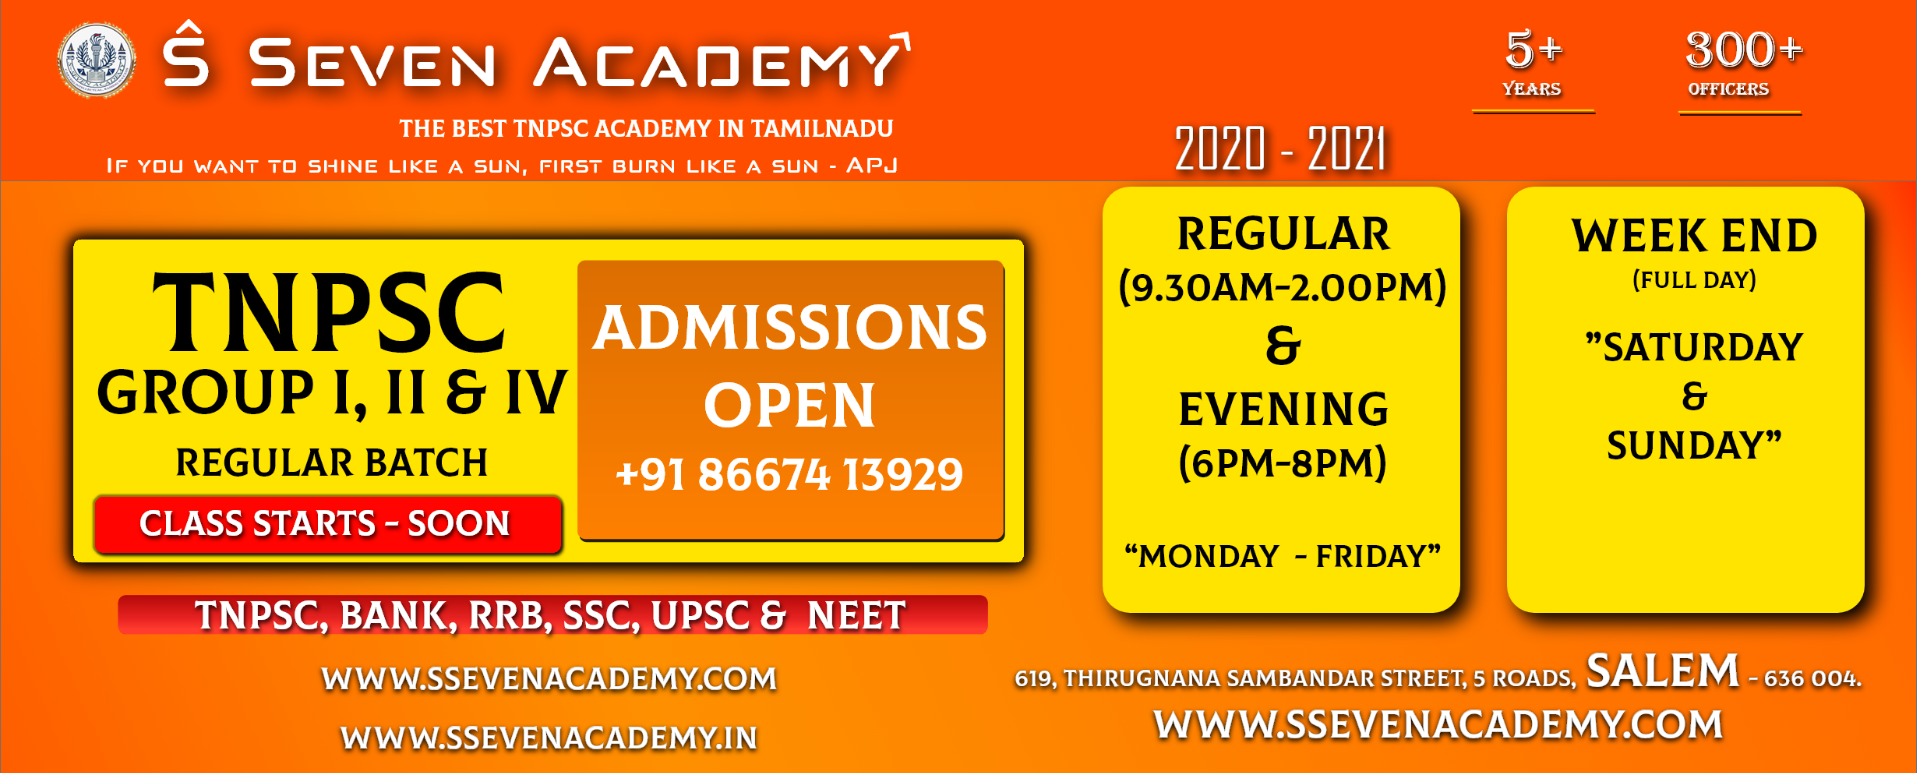 TNPSC, Group Services Examination Coaching Structure, Stream of Course, Course Title, Course Type, Course Duration, Fees Structure, Tnpsc group 1, Tnpsc group 2, Tnpsc group 4, Tnpsc Salem, TNPSC coaching in salem complete details, Fees Details, Course Details, tnpsc course fees details in salem, TNPSC Course Fees and Details, Classes in Salem, Course/Study, fee structure of the Tnpsc coaching classes, tnpsc coaching centre in salem,